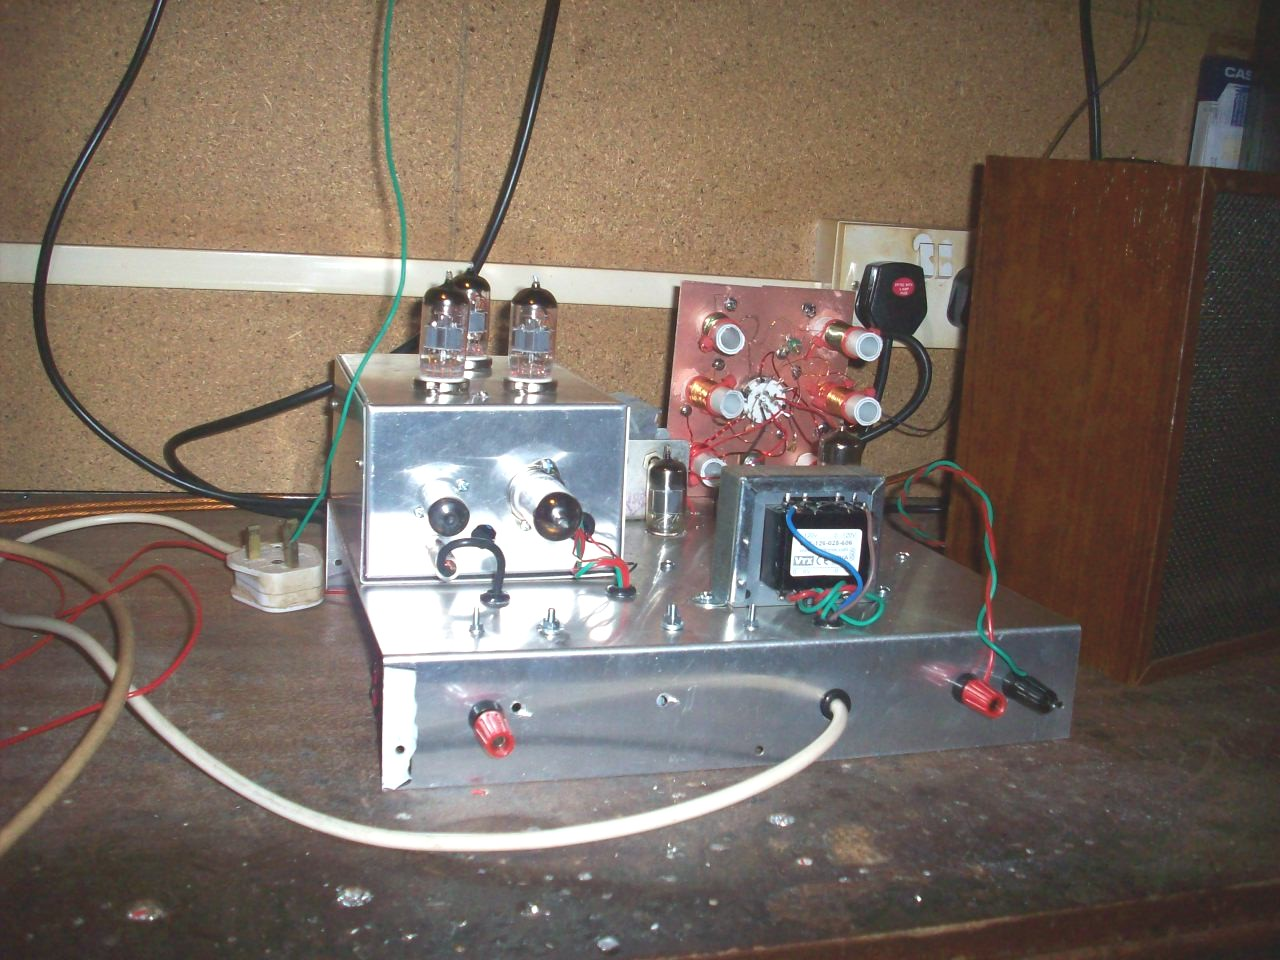 6 Valve Vhf Fm Pulse Counting Tuner Using Safe 25volt Dc Ht Line The Coil L1 On Radio Is Formed Pcb It39s Not Actually A Back View Of Newly Constructed Am Receiver As You May Notice Home Made Superhet Coils Are Used Including Medium Waves